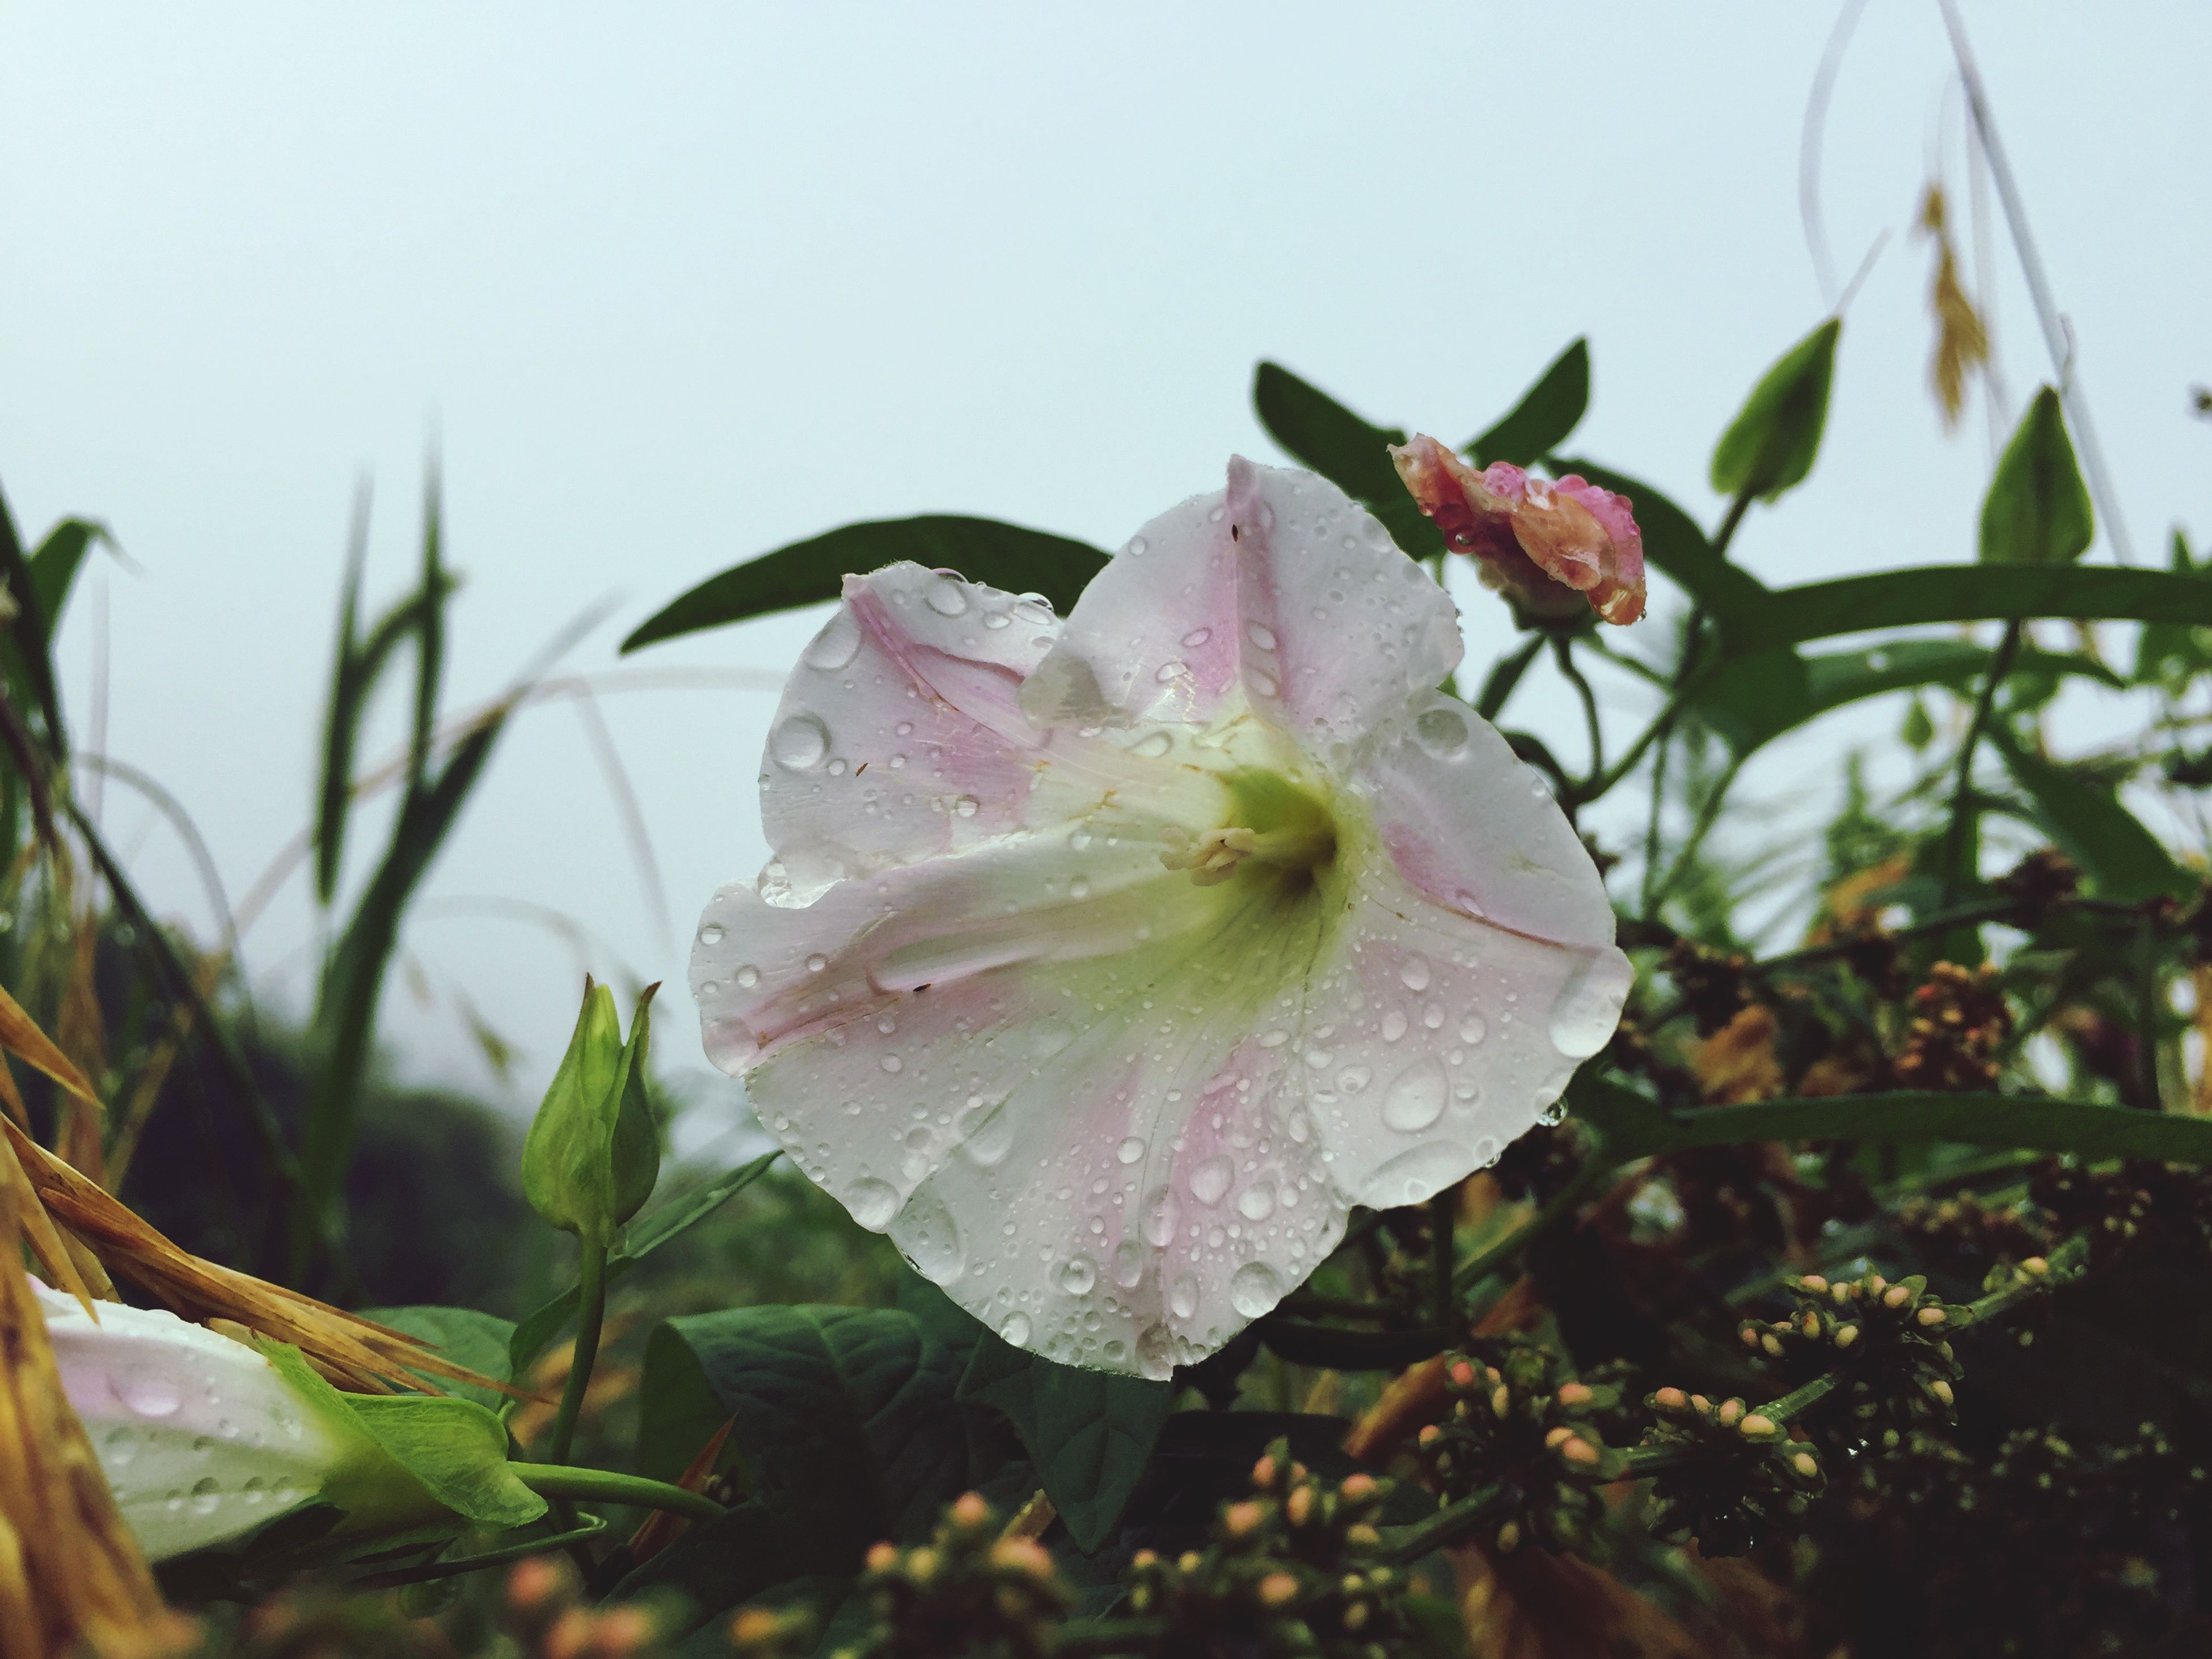 drop, flower, petal, wet, water, nature, fragility, growth, beauty in nature, no people, close-up, leaf, flower head, freshness, pink color, raindrop, plant, day, focus on foreground, rose - flower, outdoors, blooming, periwinkle